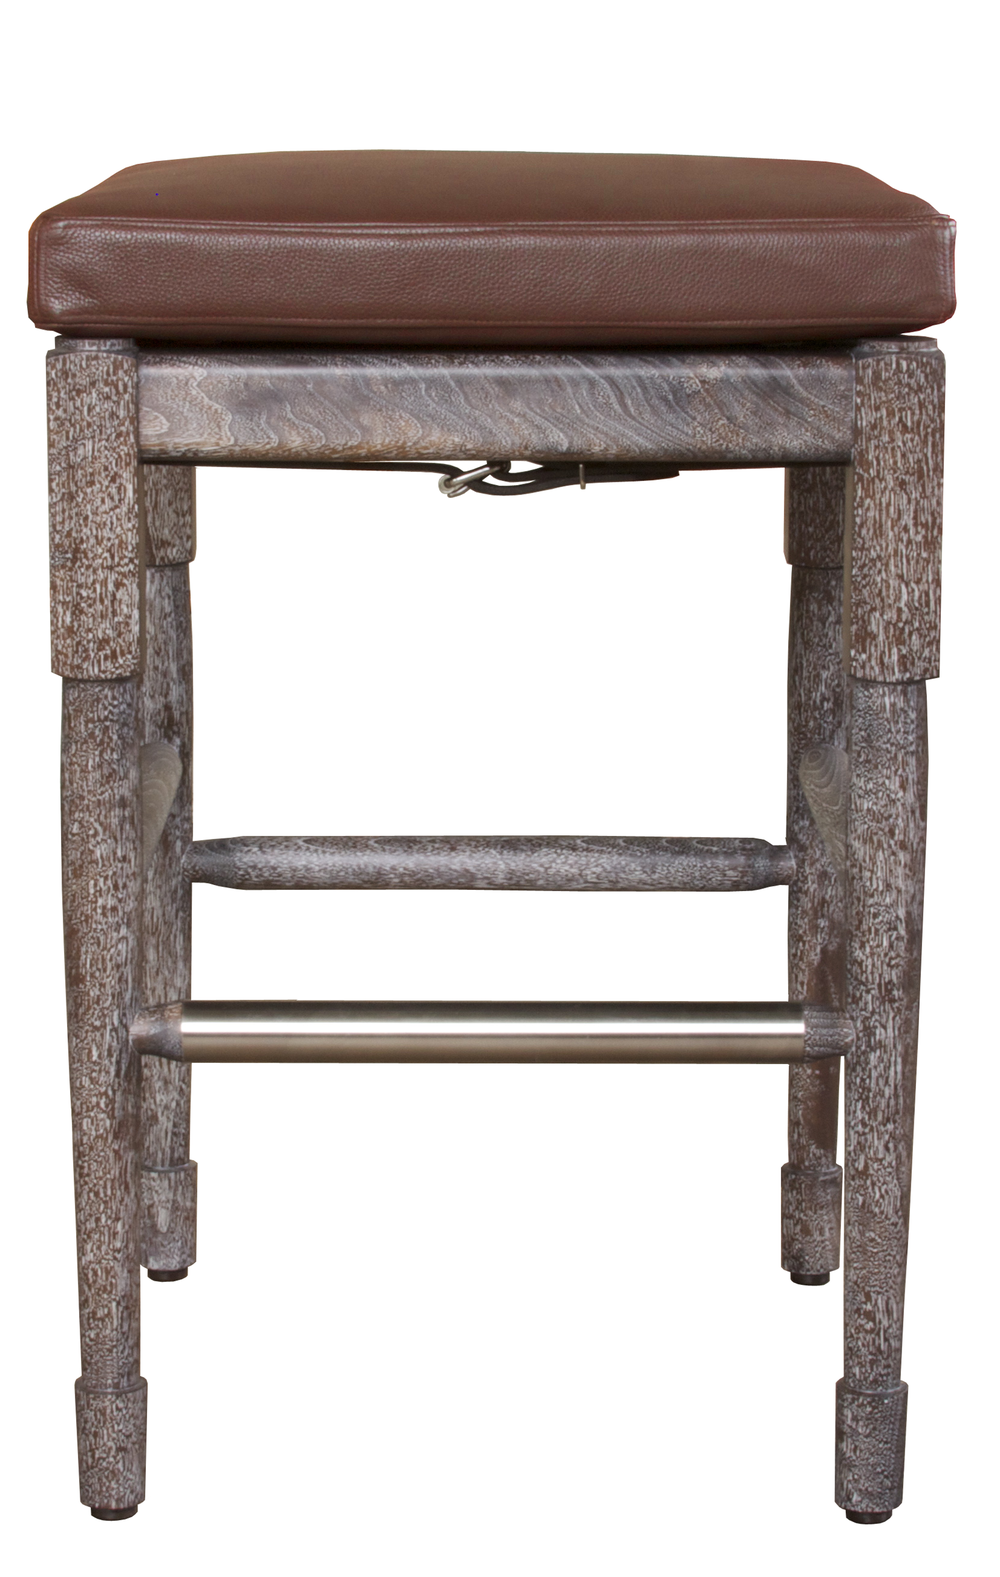 Chatwin Stool - Bar, Counter, or Dining